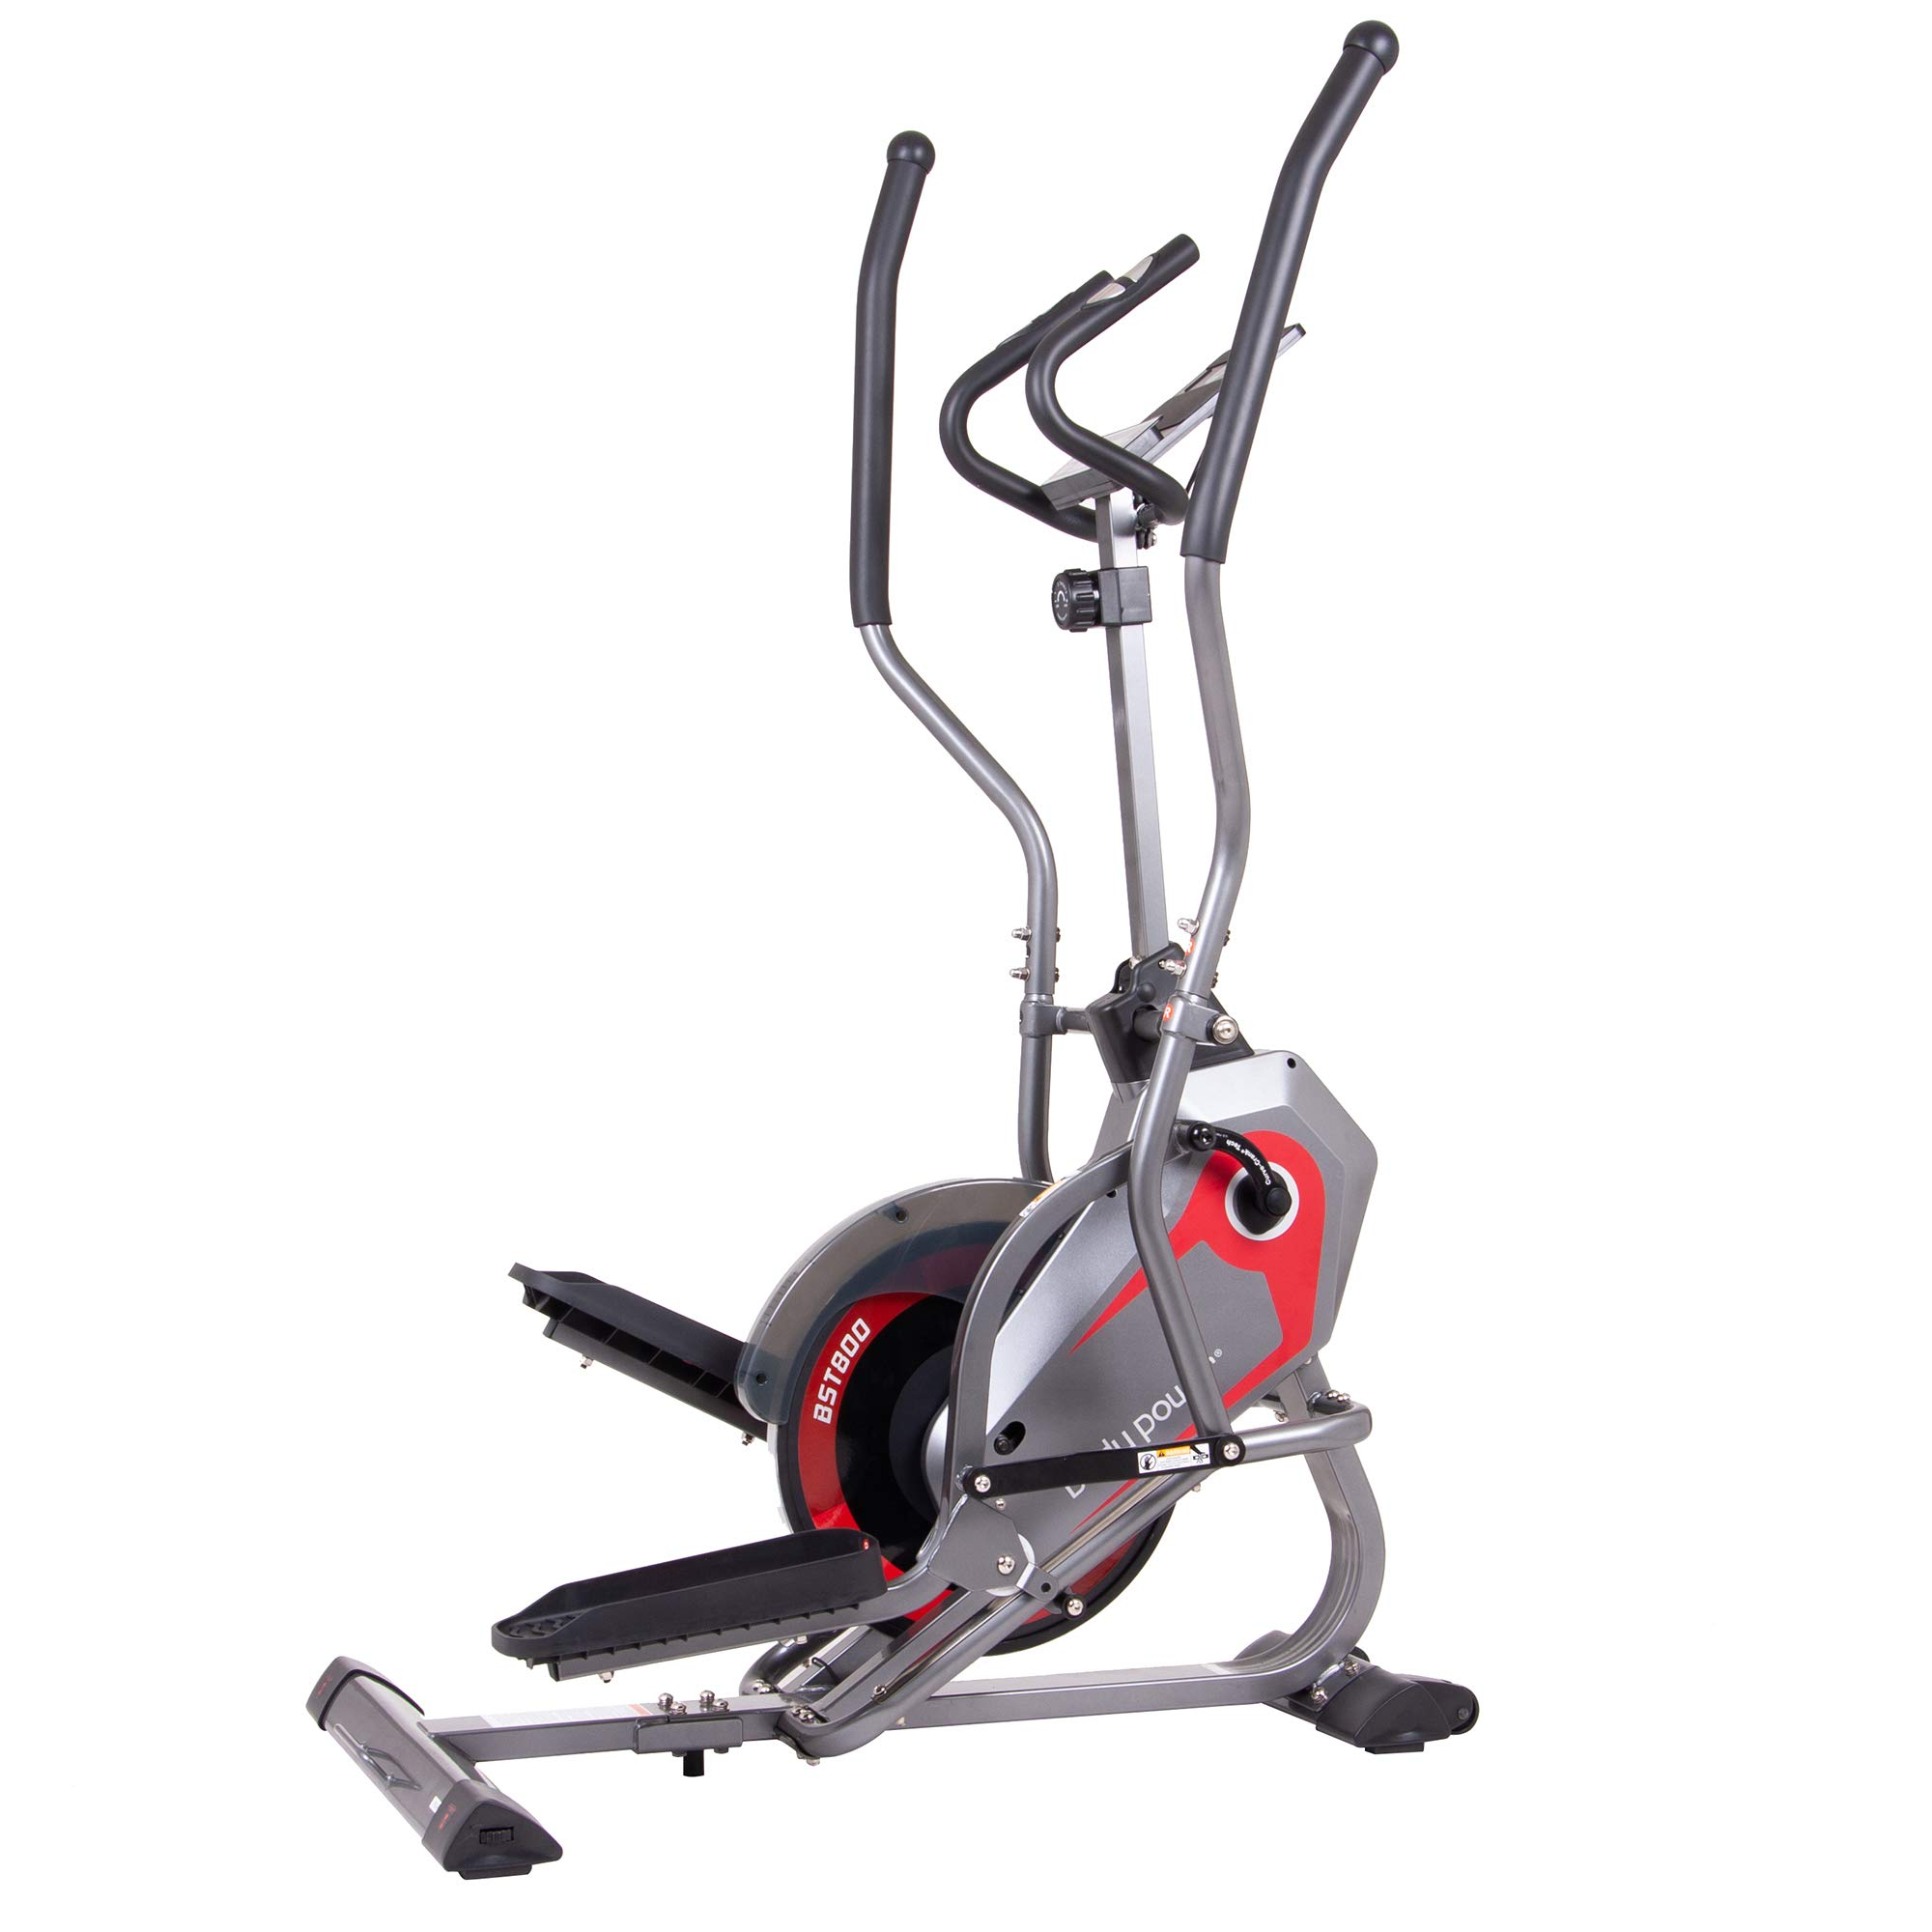 Body Power StepTrac 2 in 1 Elliptical Stepper Workout HIIT Trainer with Curve-Crank Technology by Body Power